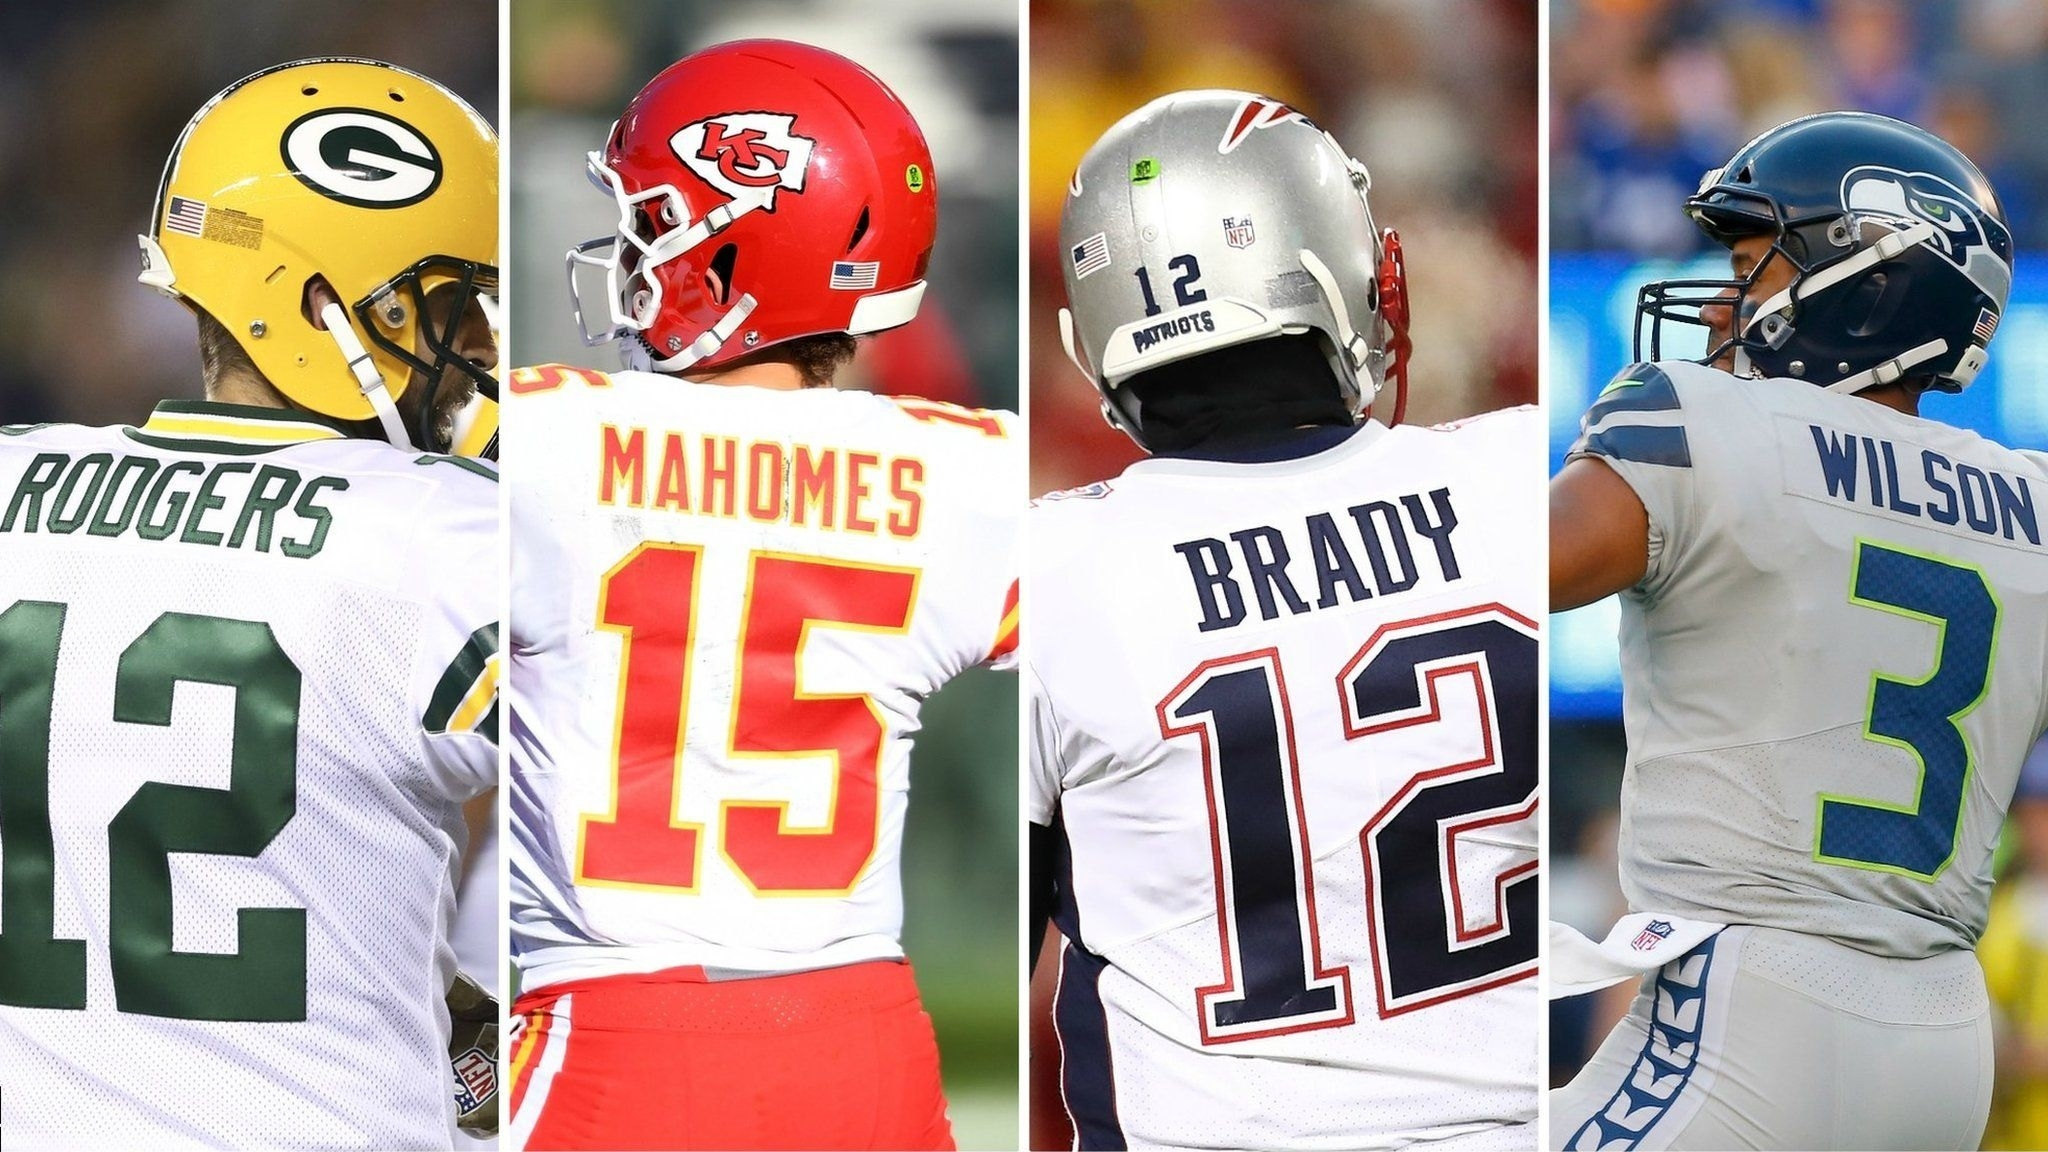 2019-20 Nfl Season: How To Follow American Football On The in Bbc Super Bowl 2019